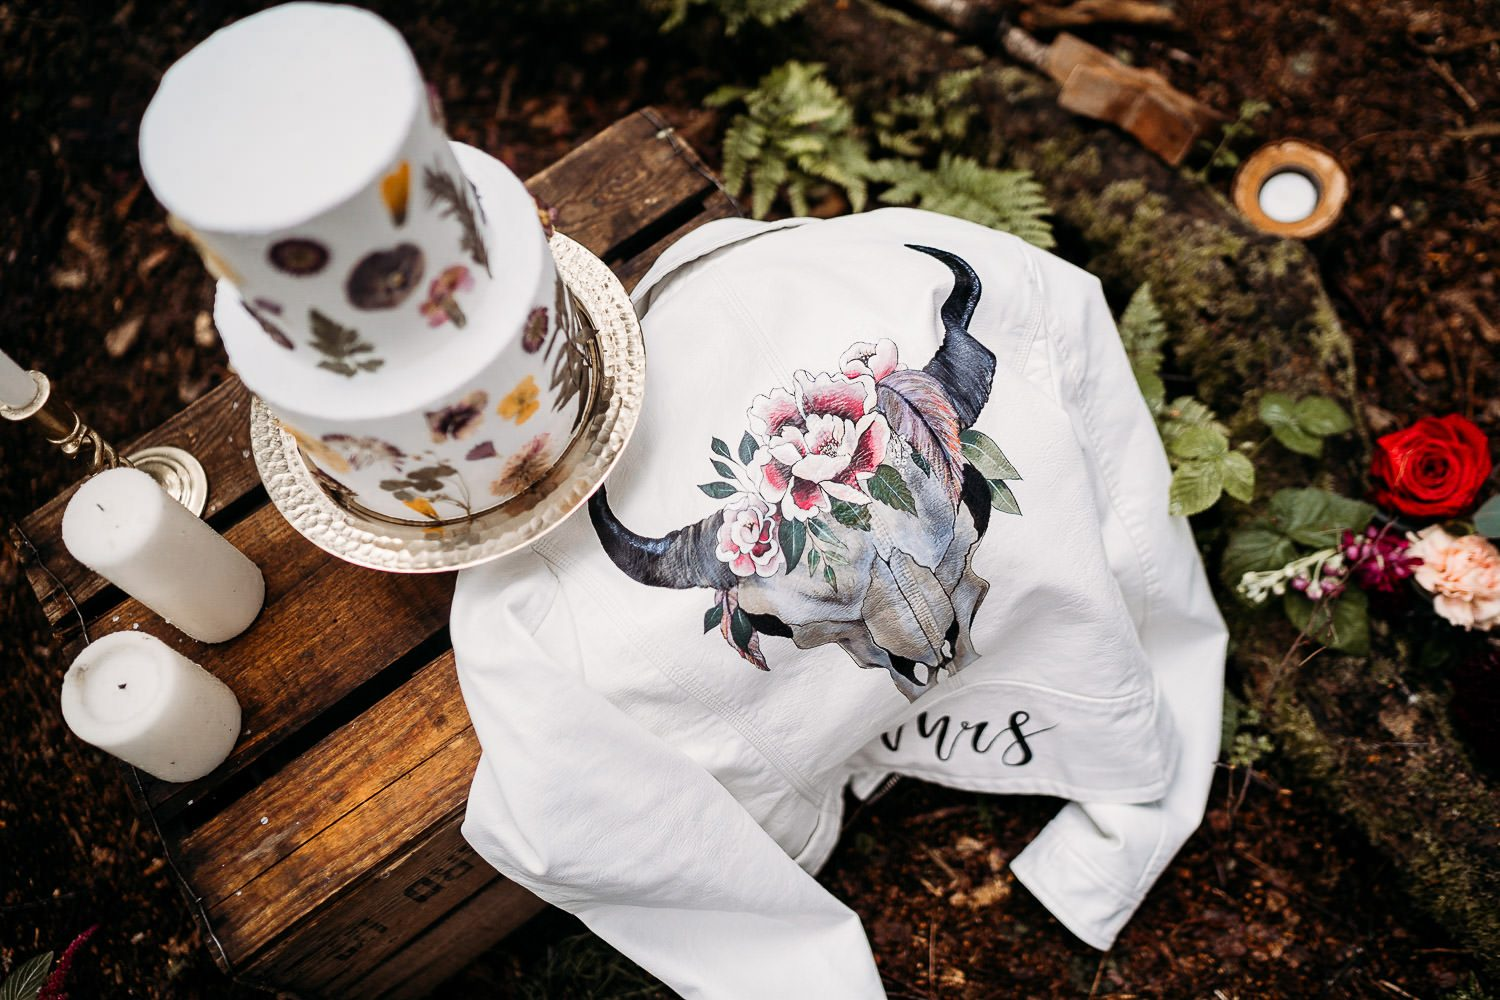 handpainted white leather bride jacket with deer skull and flowers